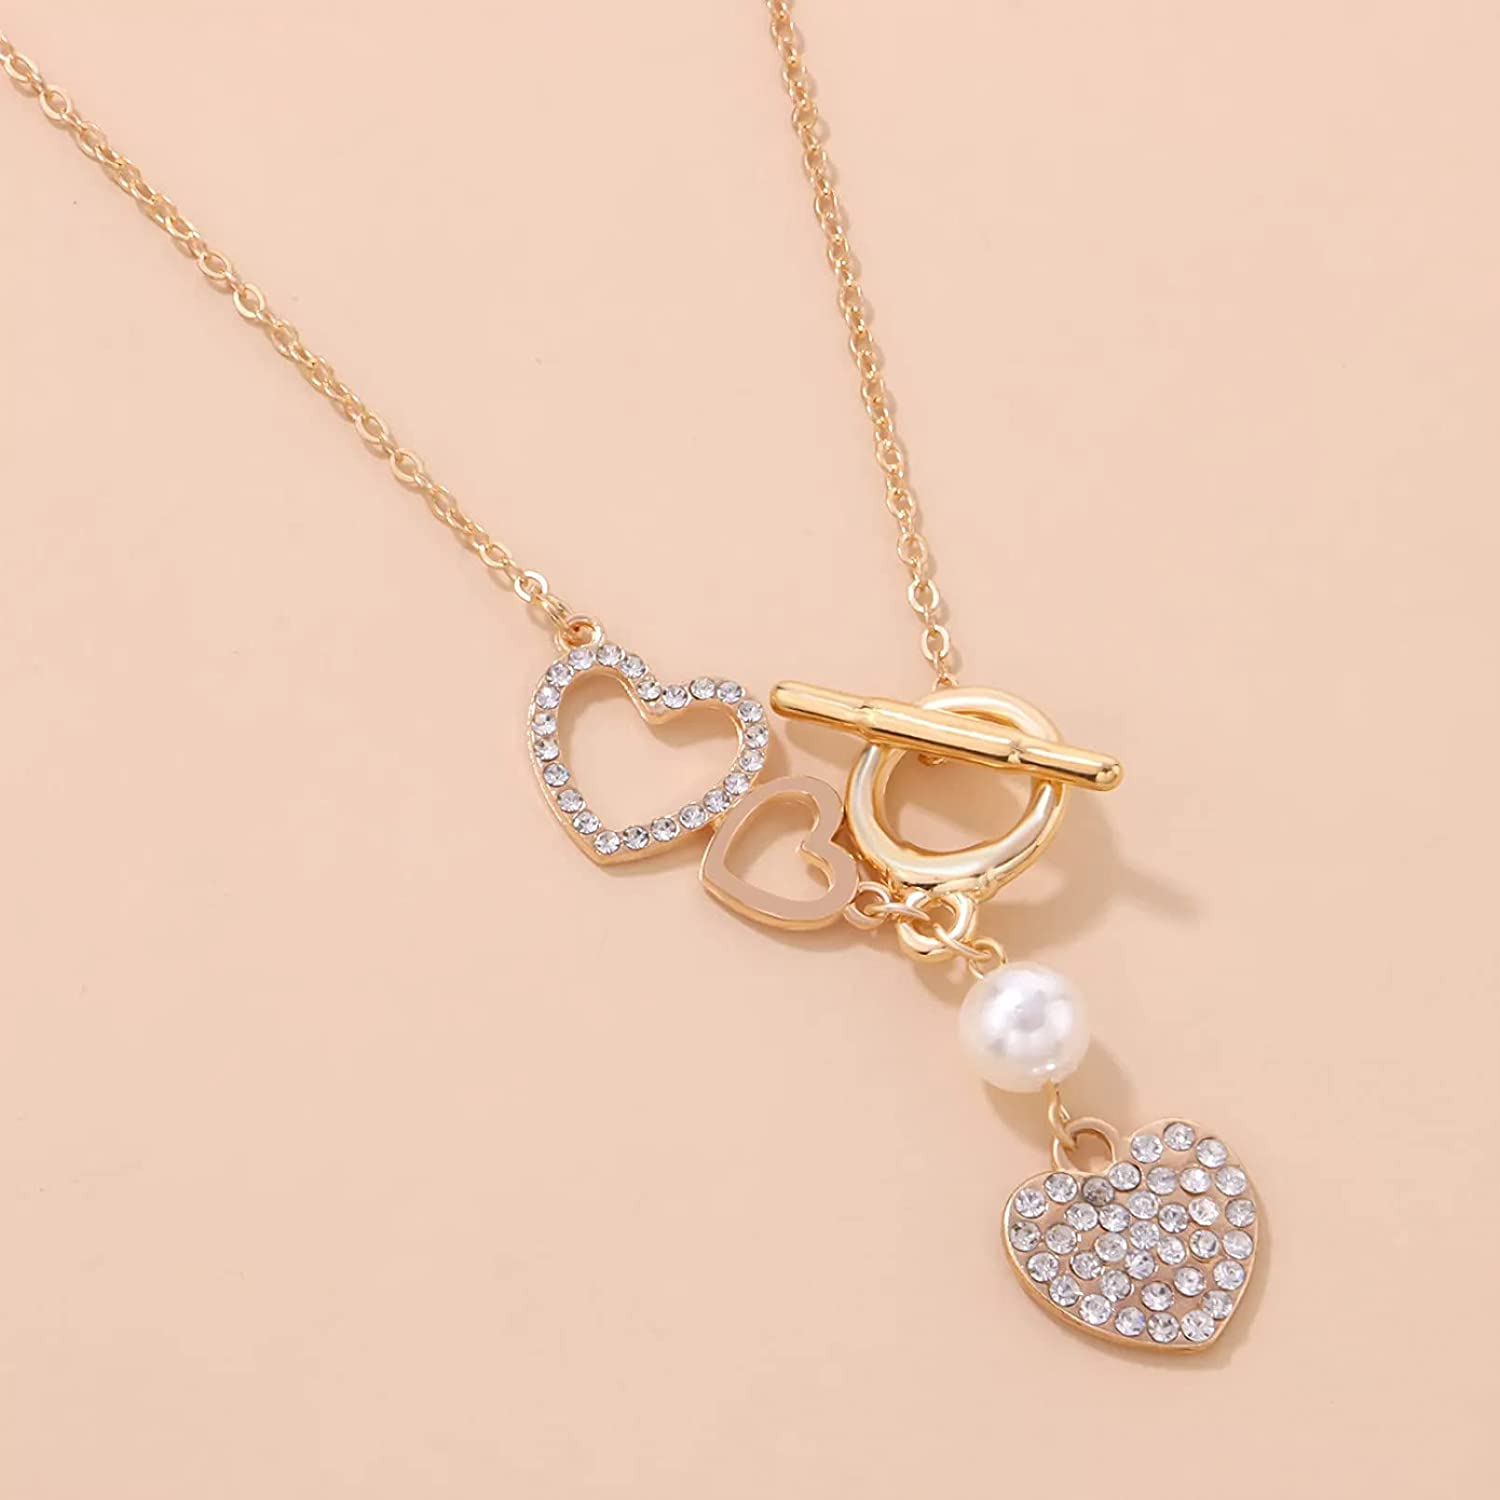 WDBUN Necklace Pendant Jewelry Fashion Crystal Heart Female Choker Necklace Simple Neck Chain Lock Pendant Necklace Jewelry Neck Charm Collars Halloween Christmas Valentine's Day Birthday Gift